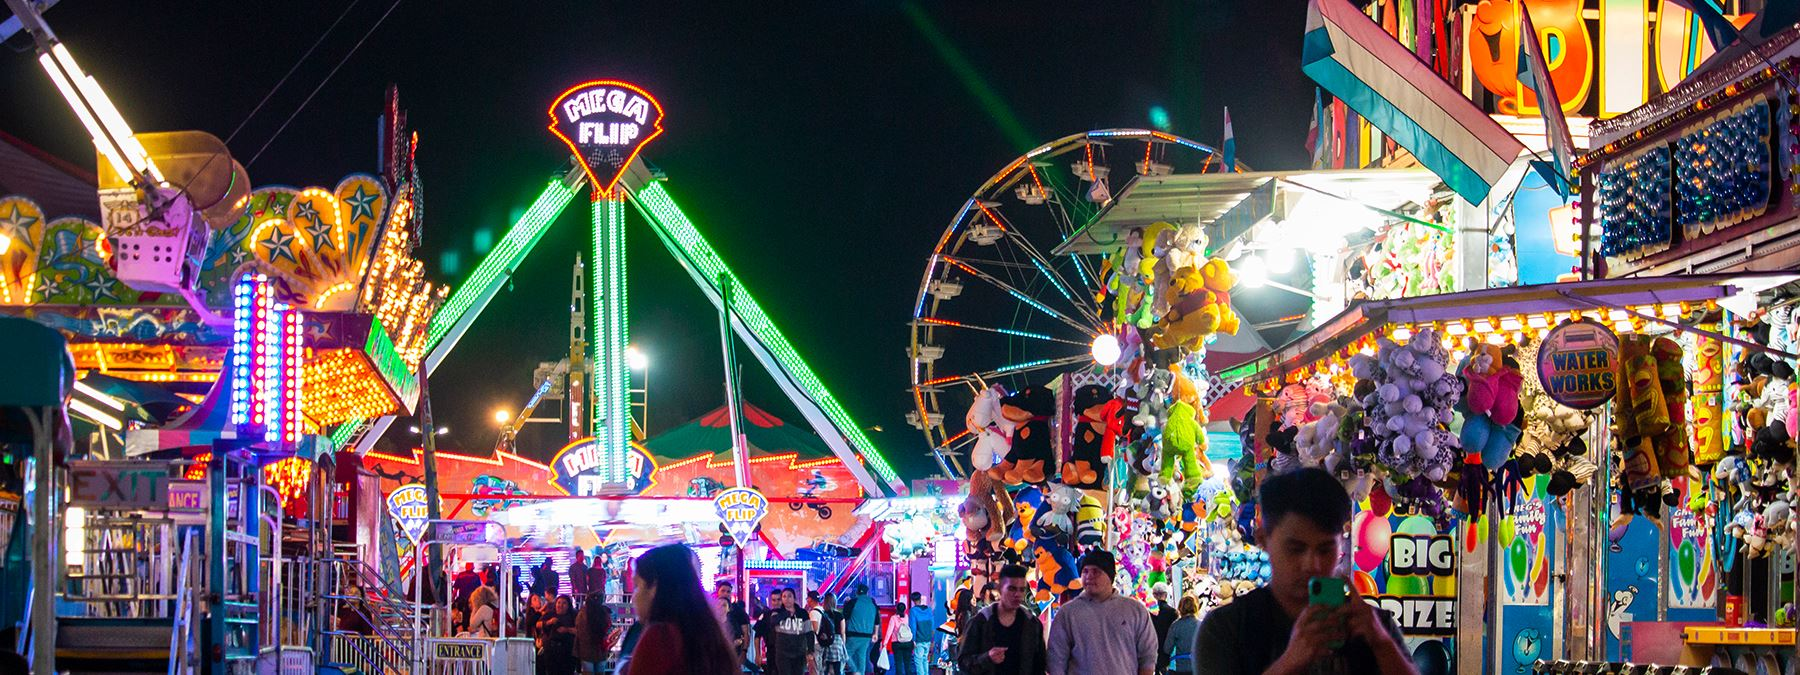 Sweet Deals! How to Cash In at the Big Fresno Fair